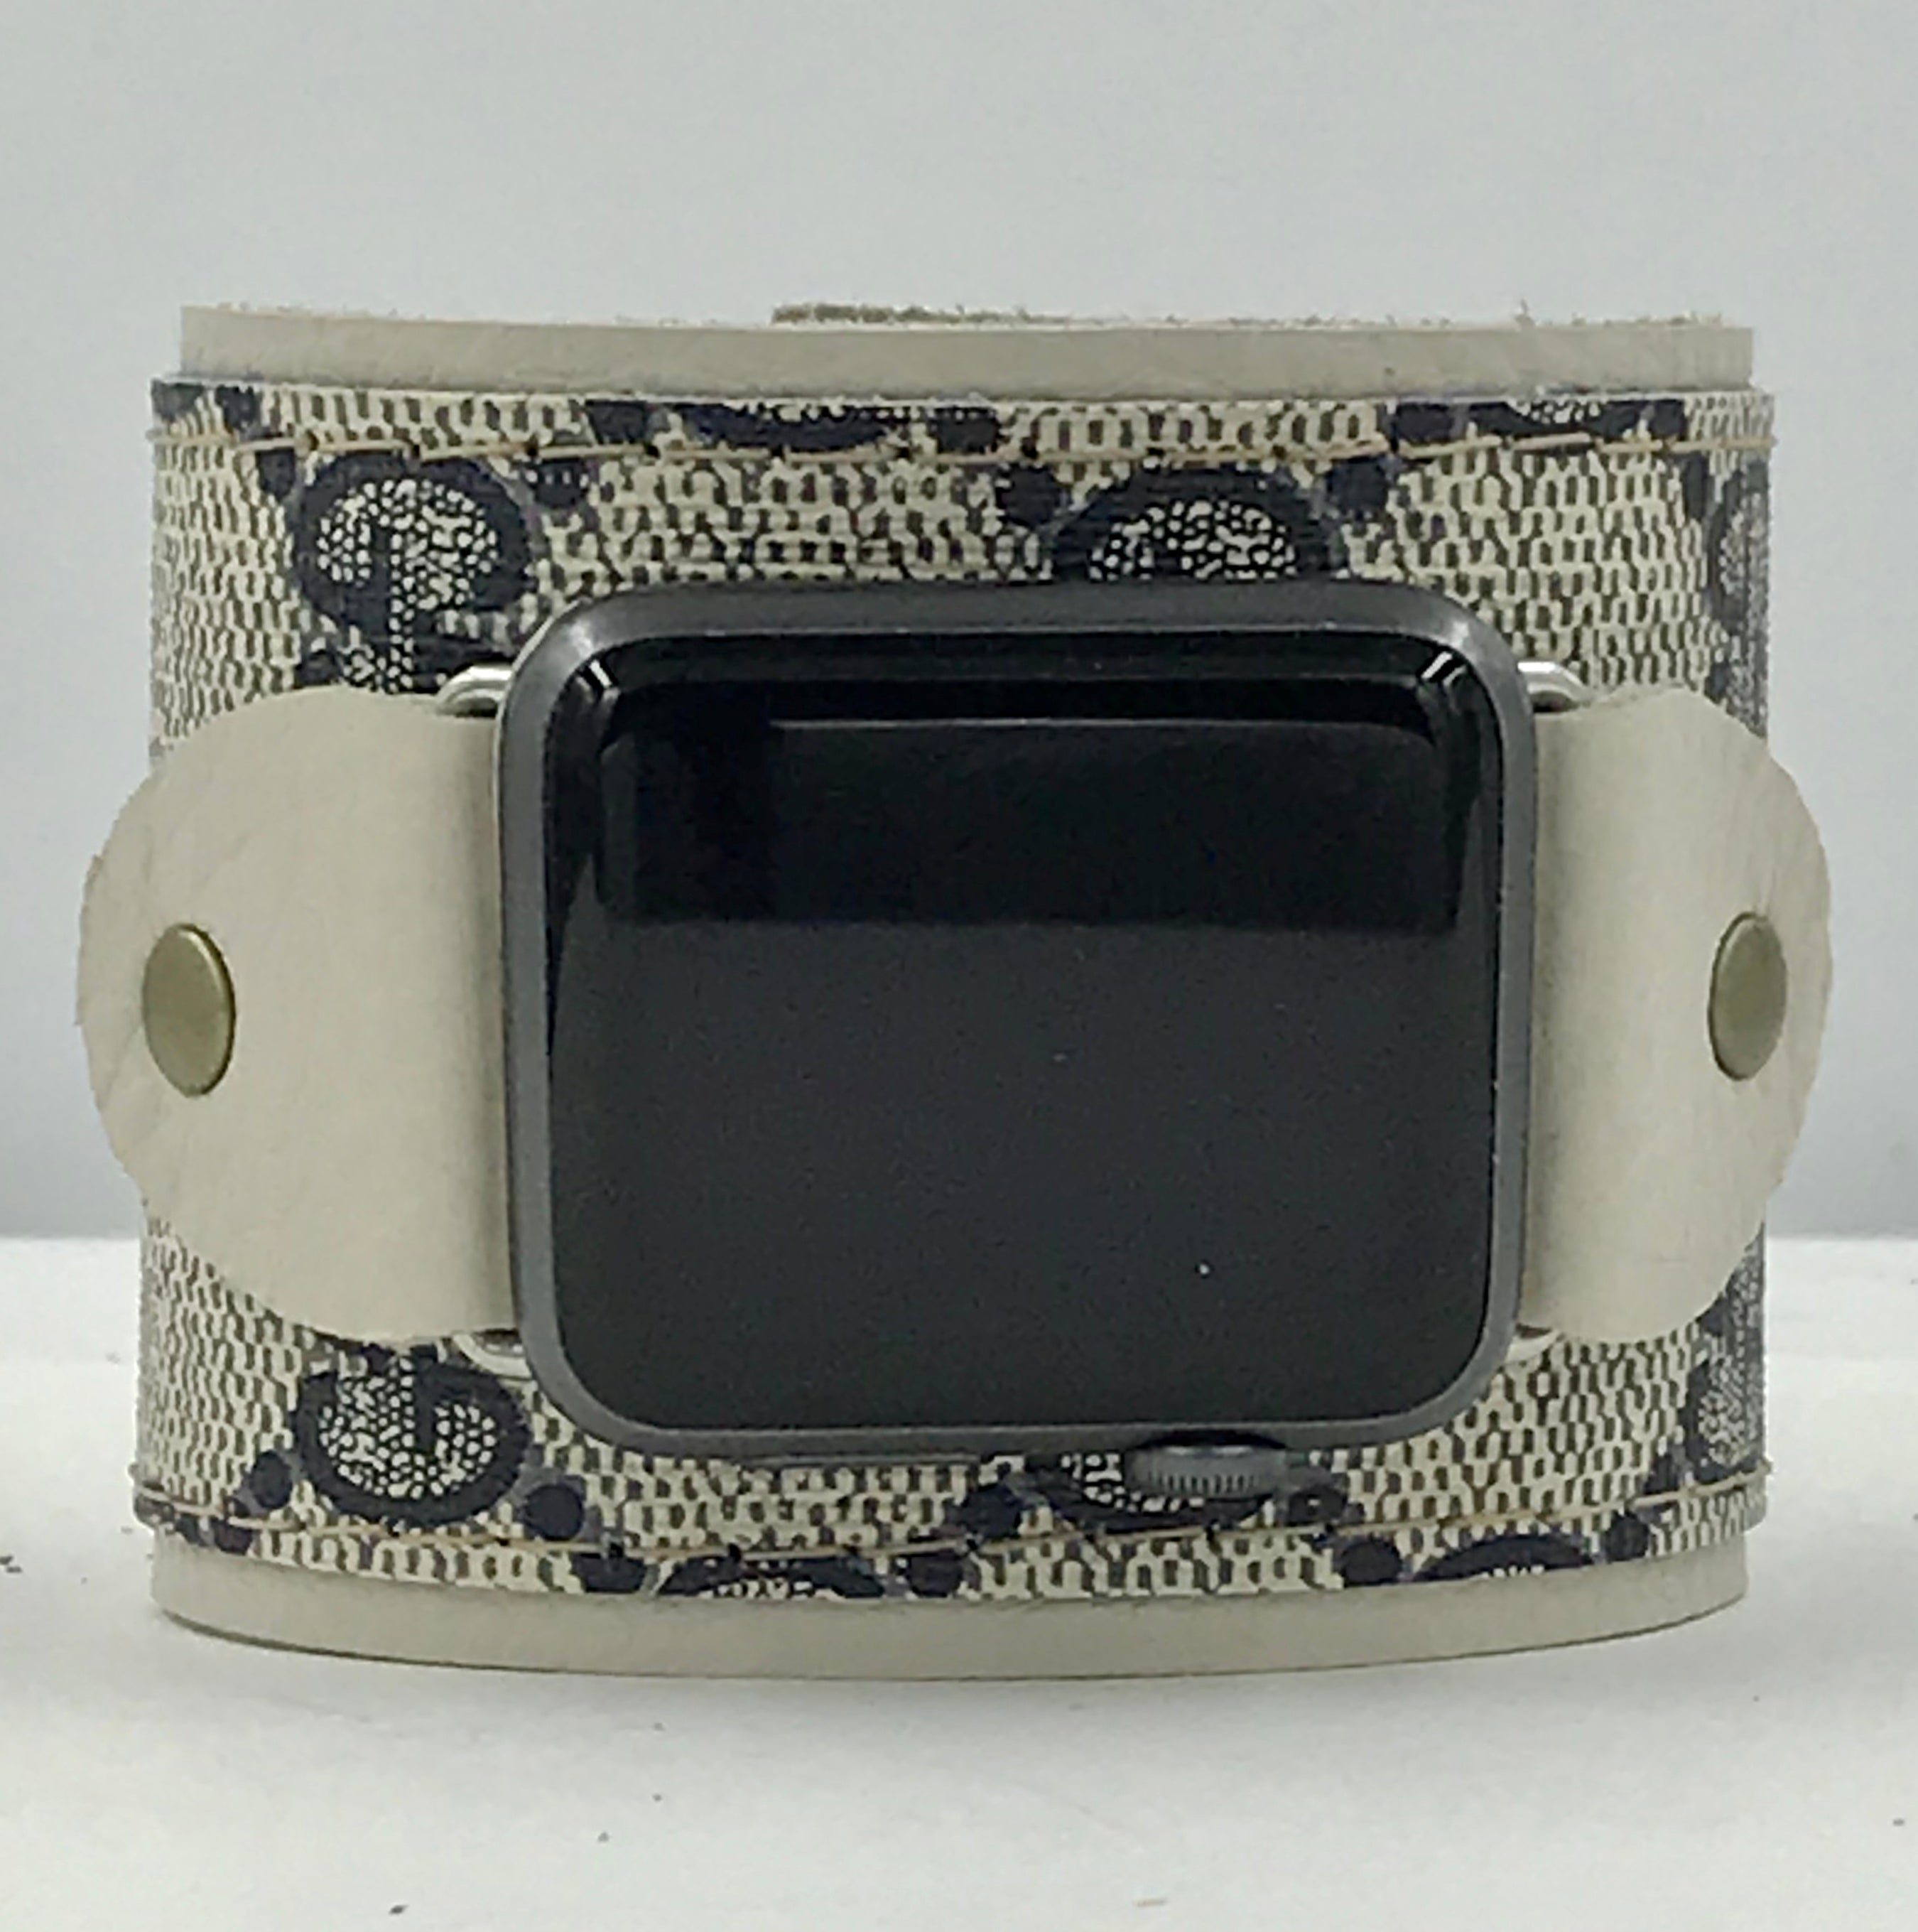 Upcycled Gucci Apple Watch Band - Large